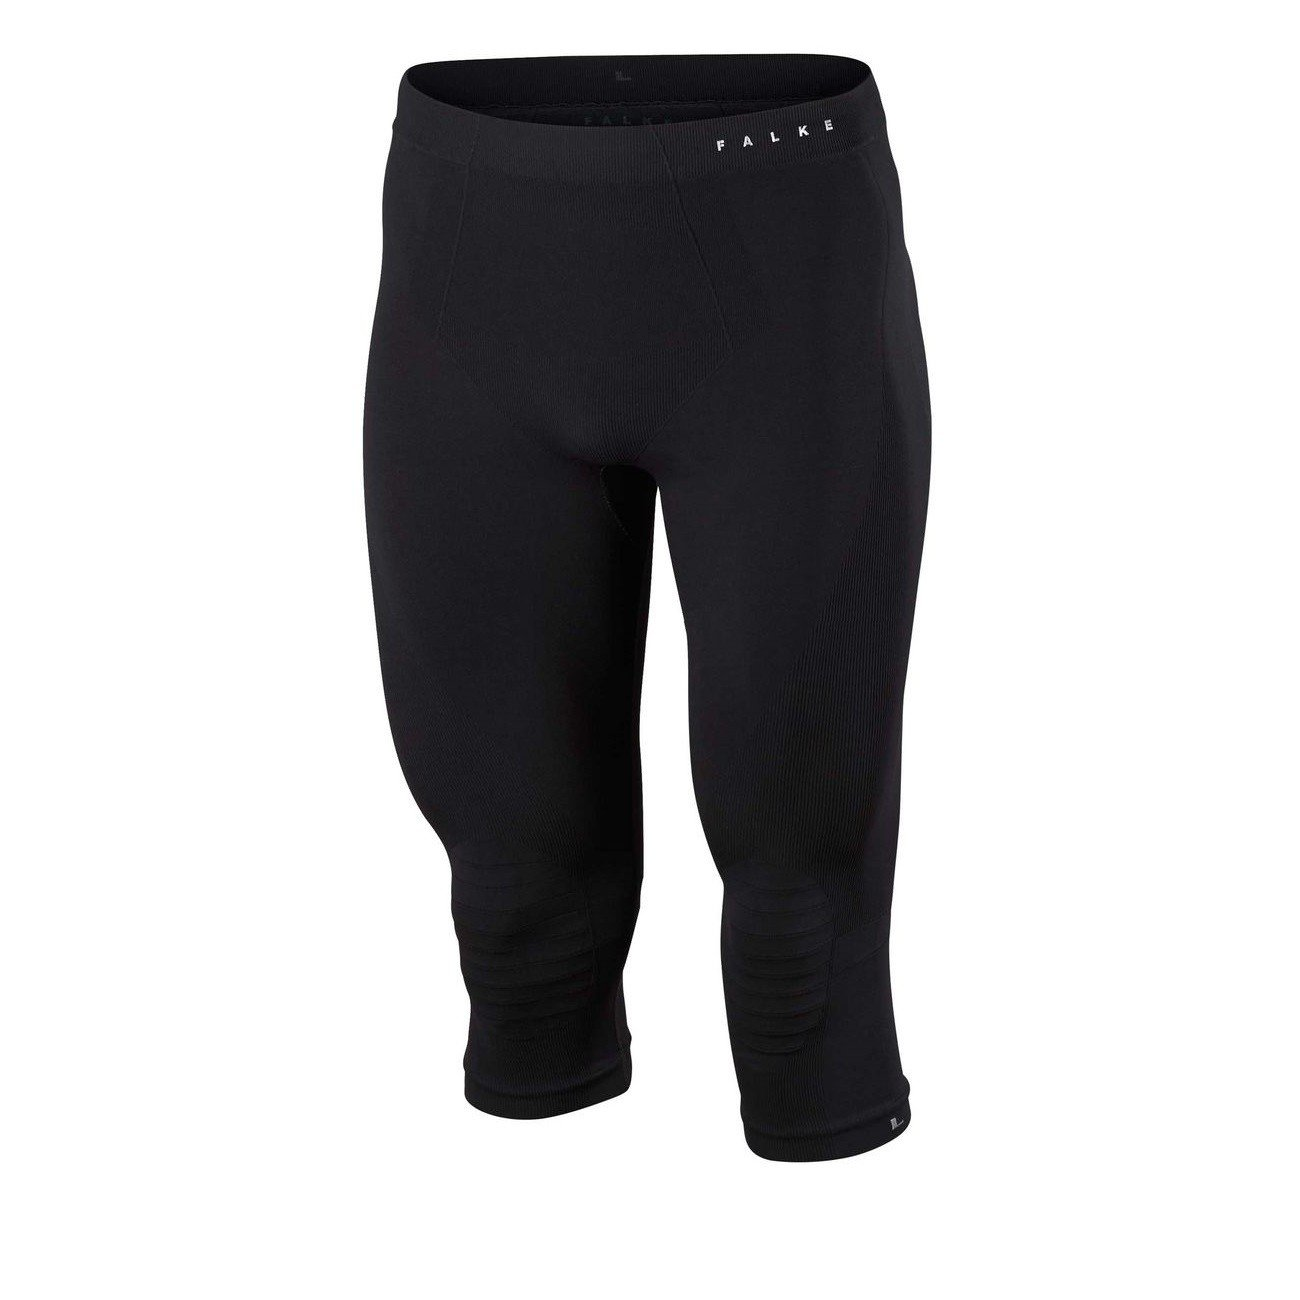 FALKE Herren Skiunterwäsche Skiing Athletic 3 4 Tights